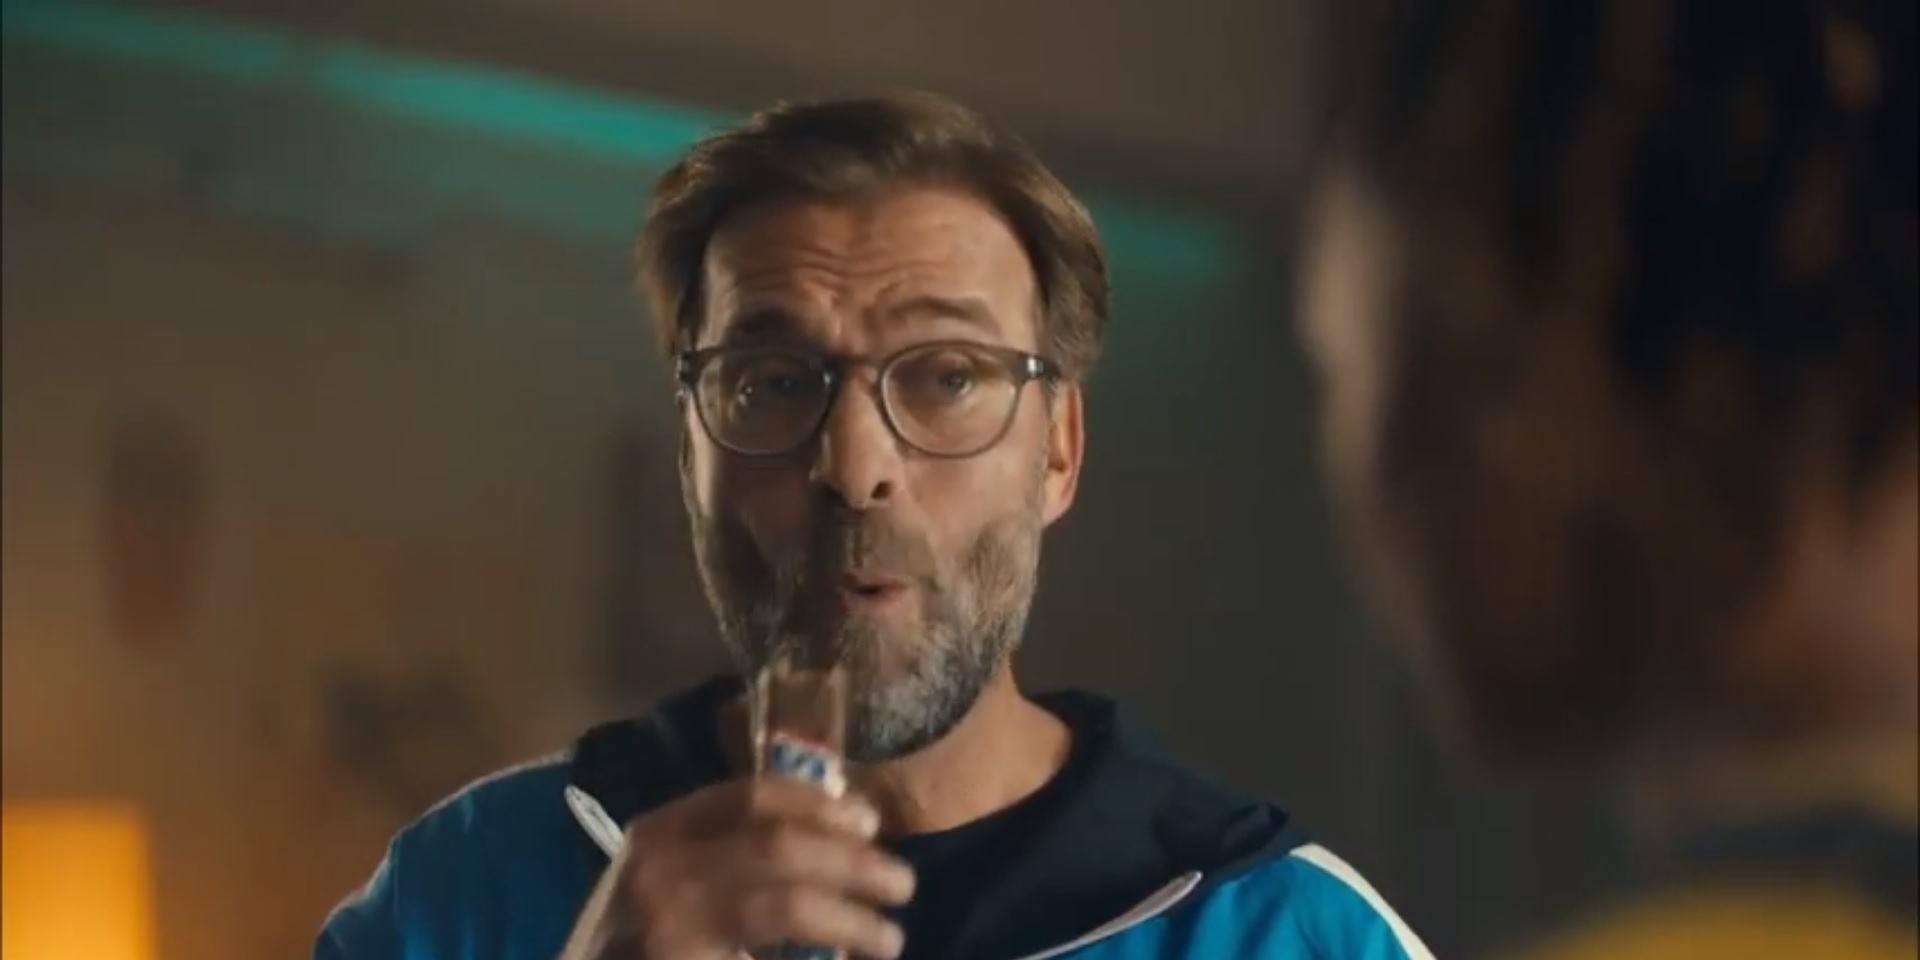 (Video) Klopp loses his temper with table football players in hilarious Snickers ad